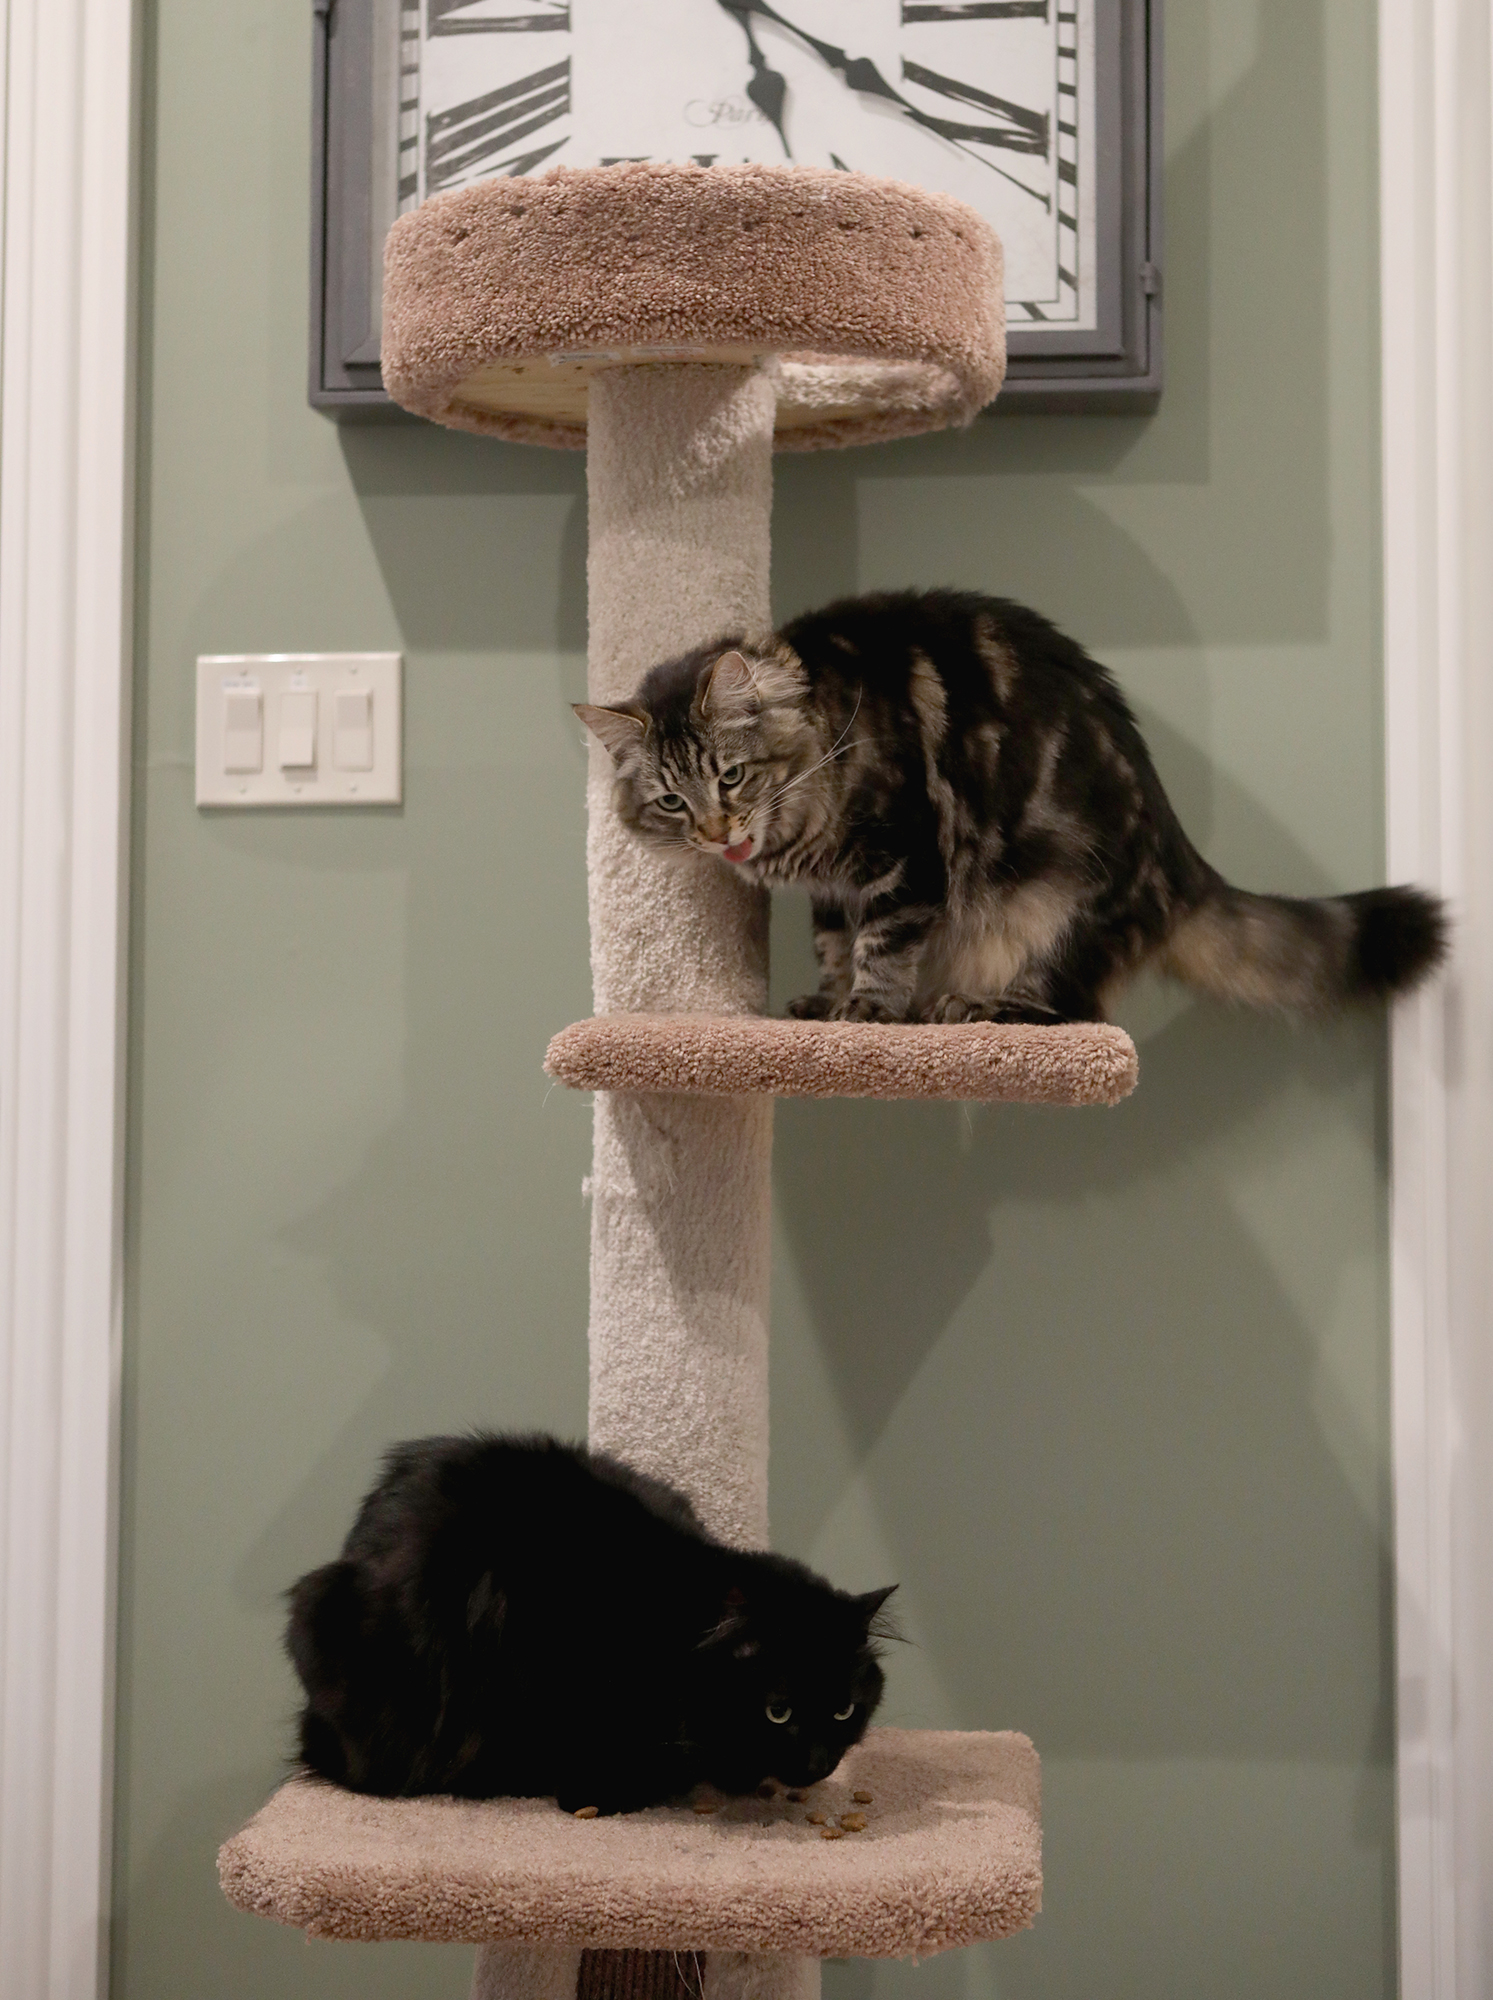 Owners rent studio for cats in San Jose